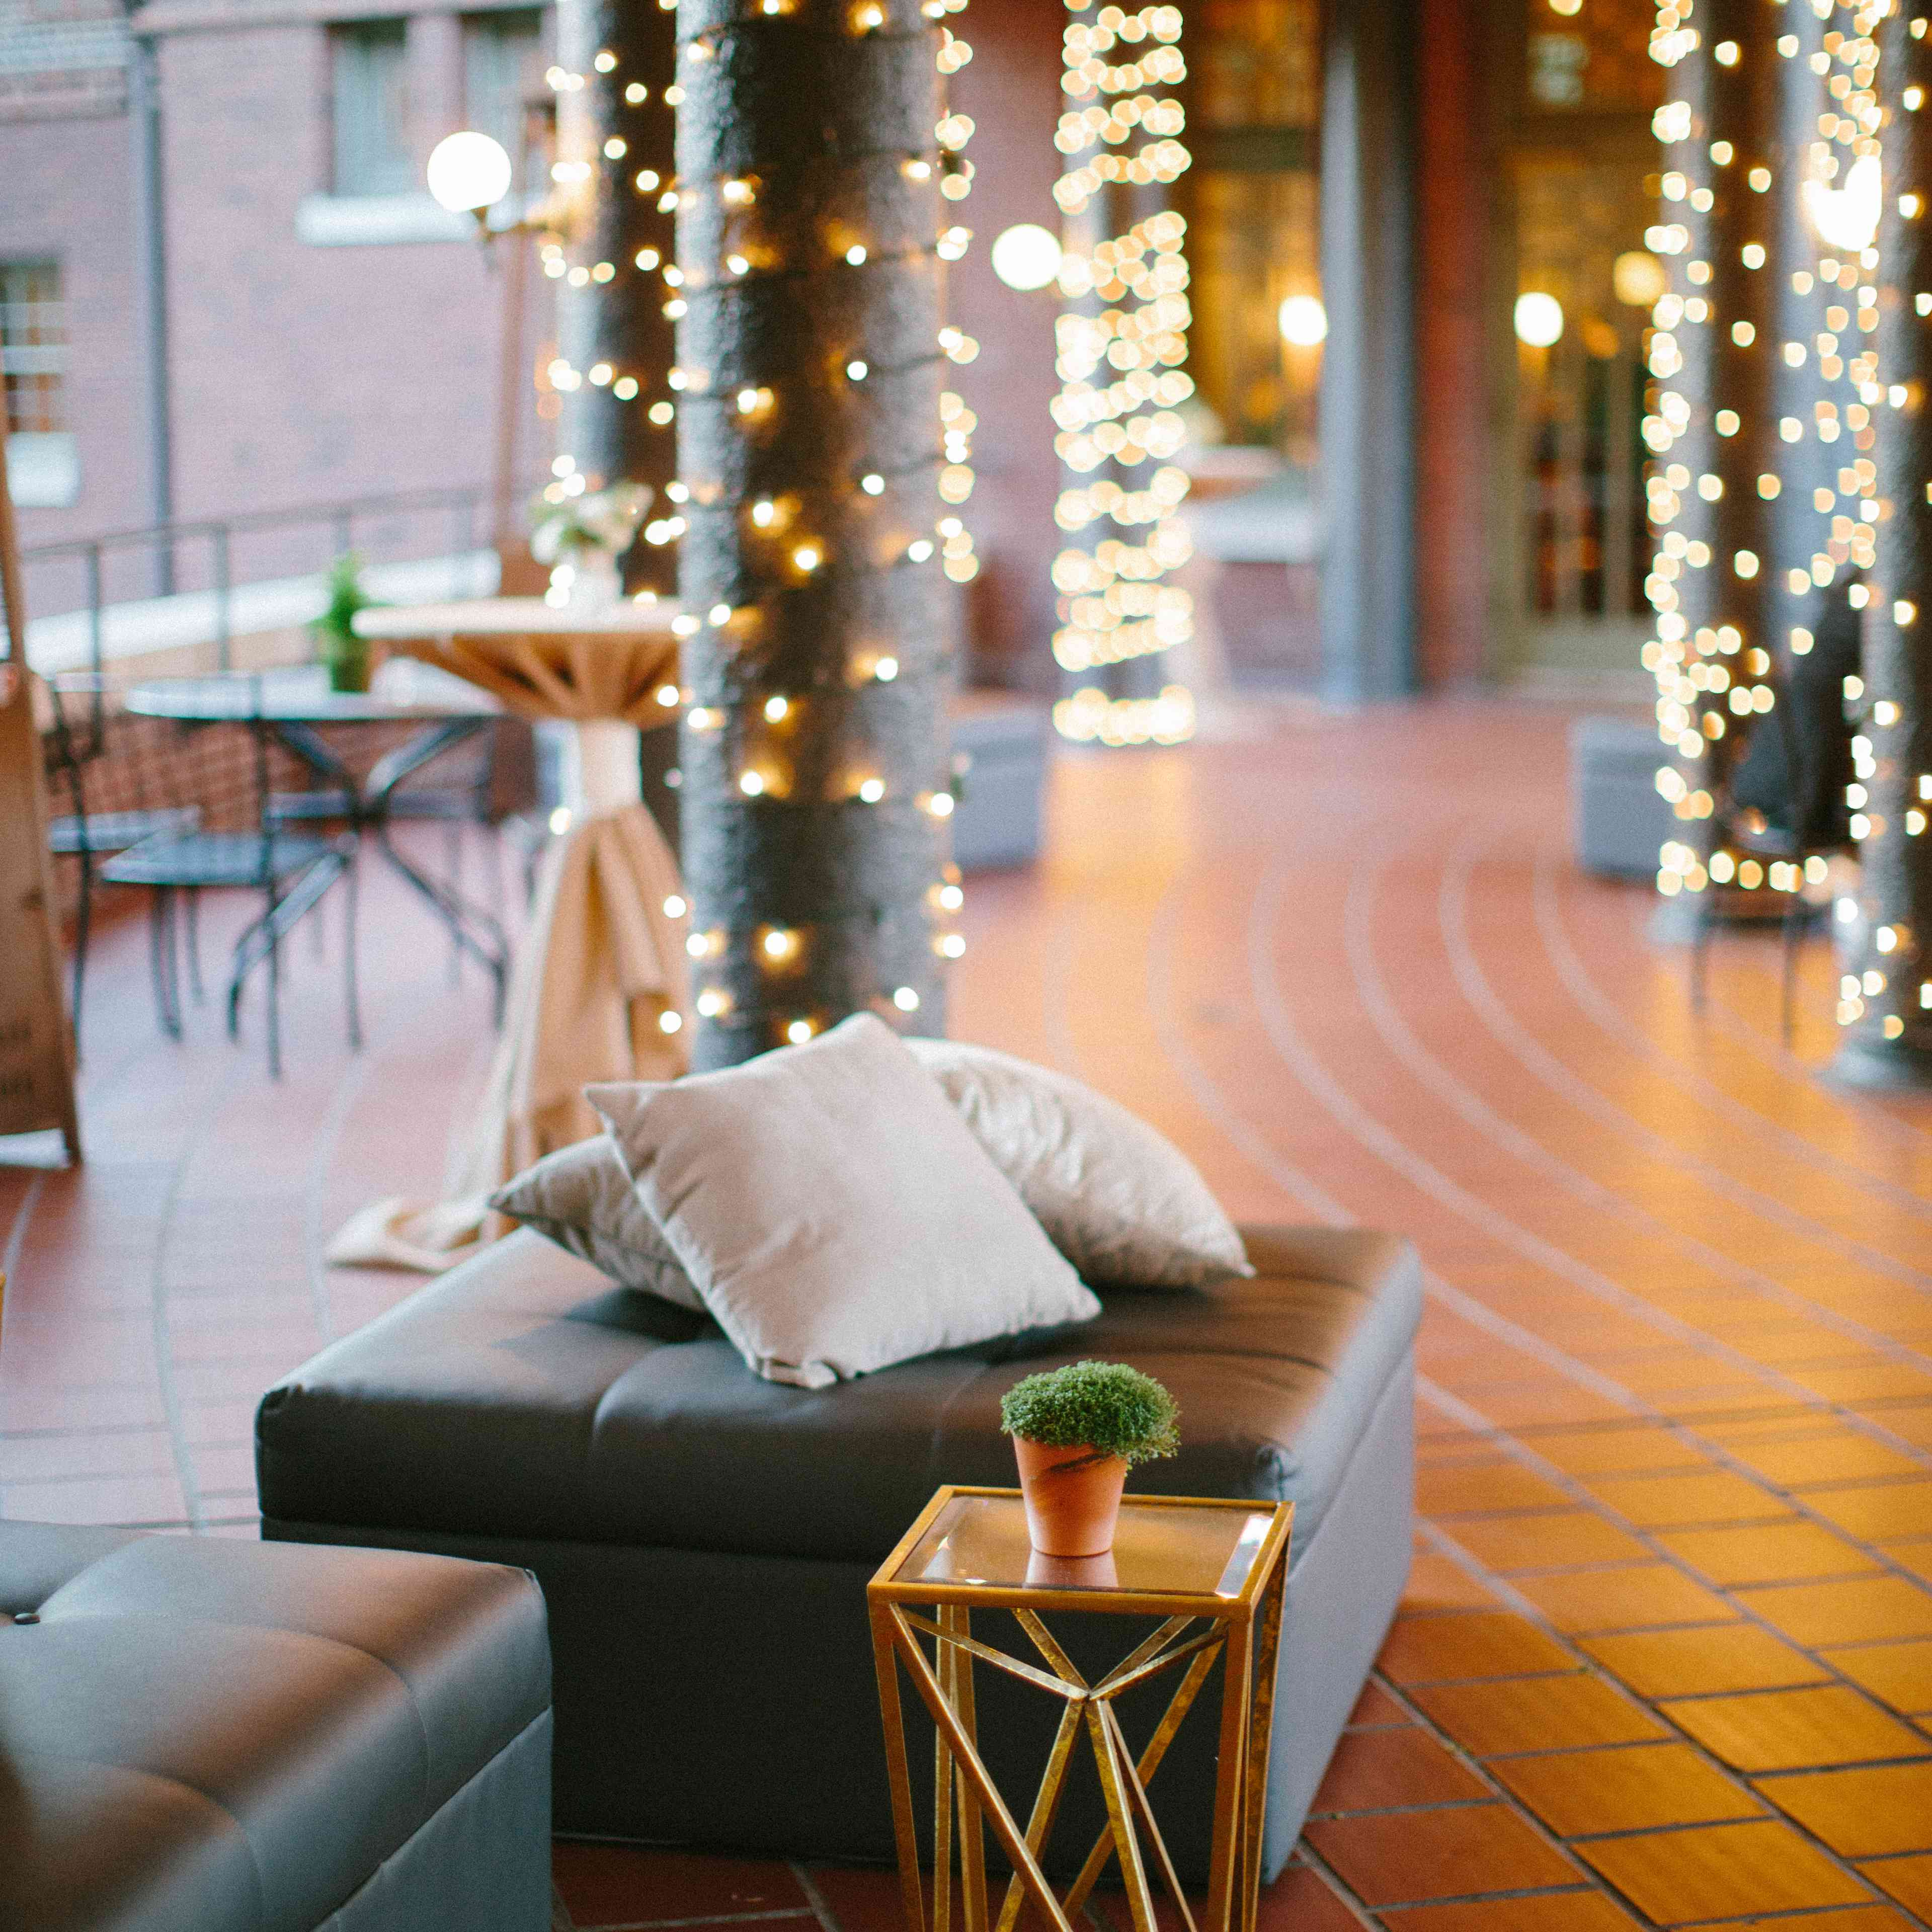 Reception Lounge with String Lights